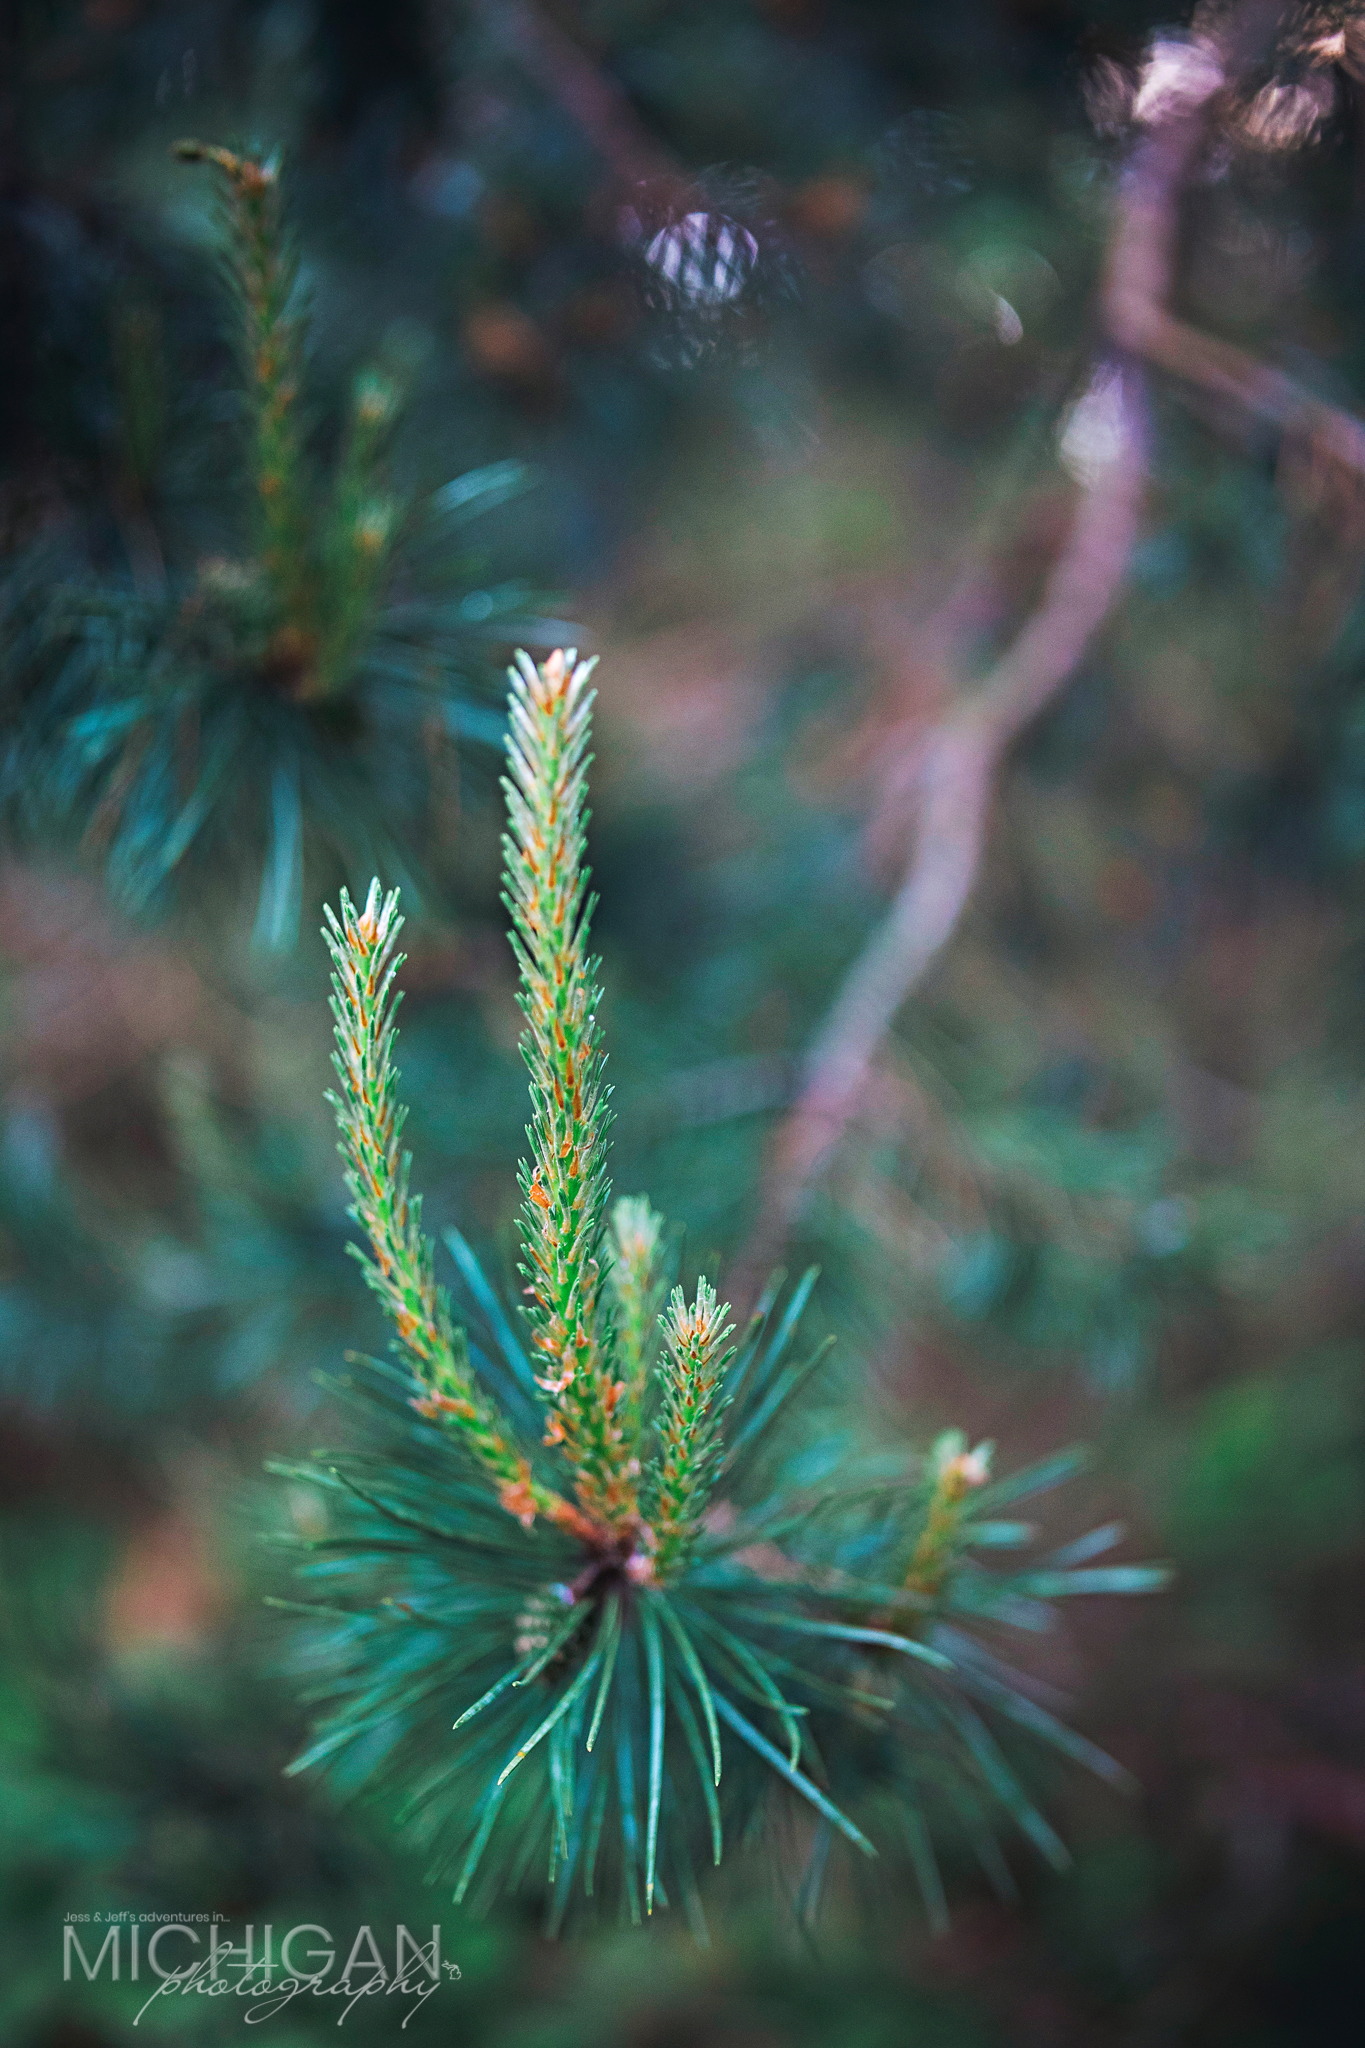 A close up of the pine trees near the entrance of the trail.